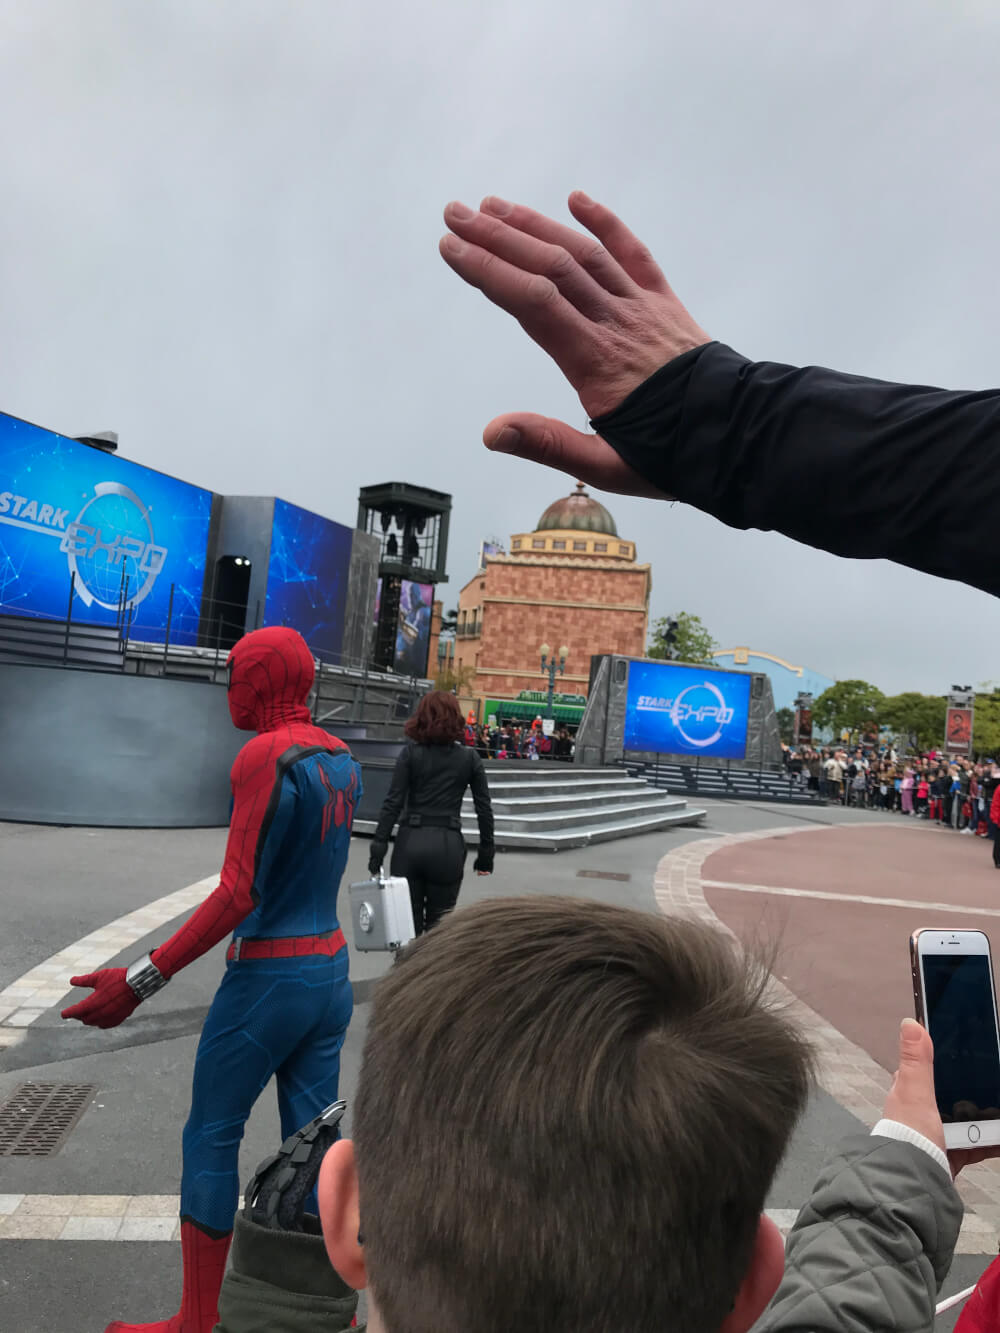 Spiderman at the Marvel Season of Heroes at Disneyland Paris